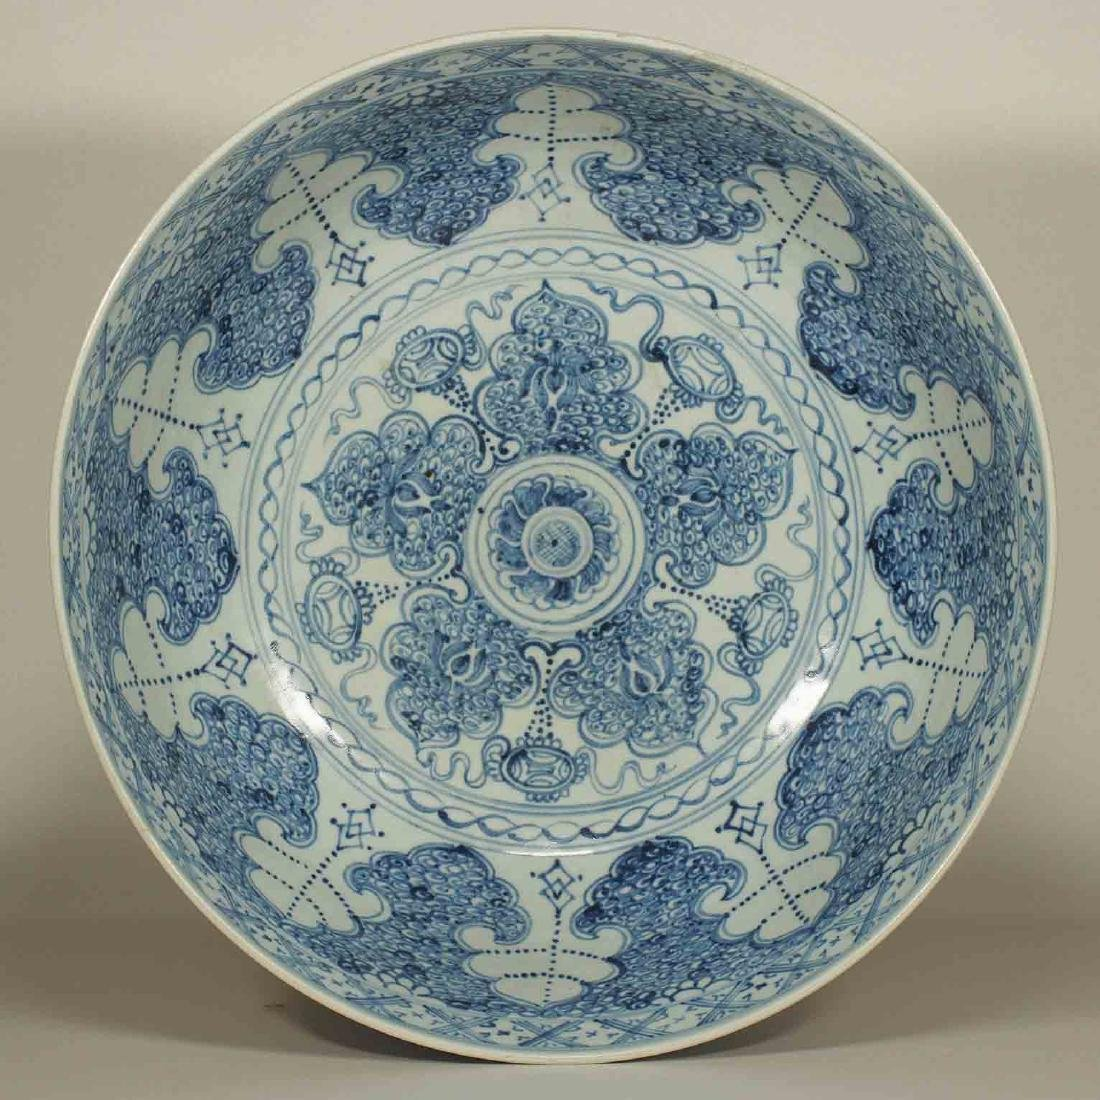 Massive Bowl with Arabic design, 15th century Ming